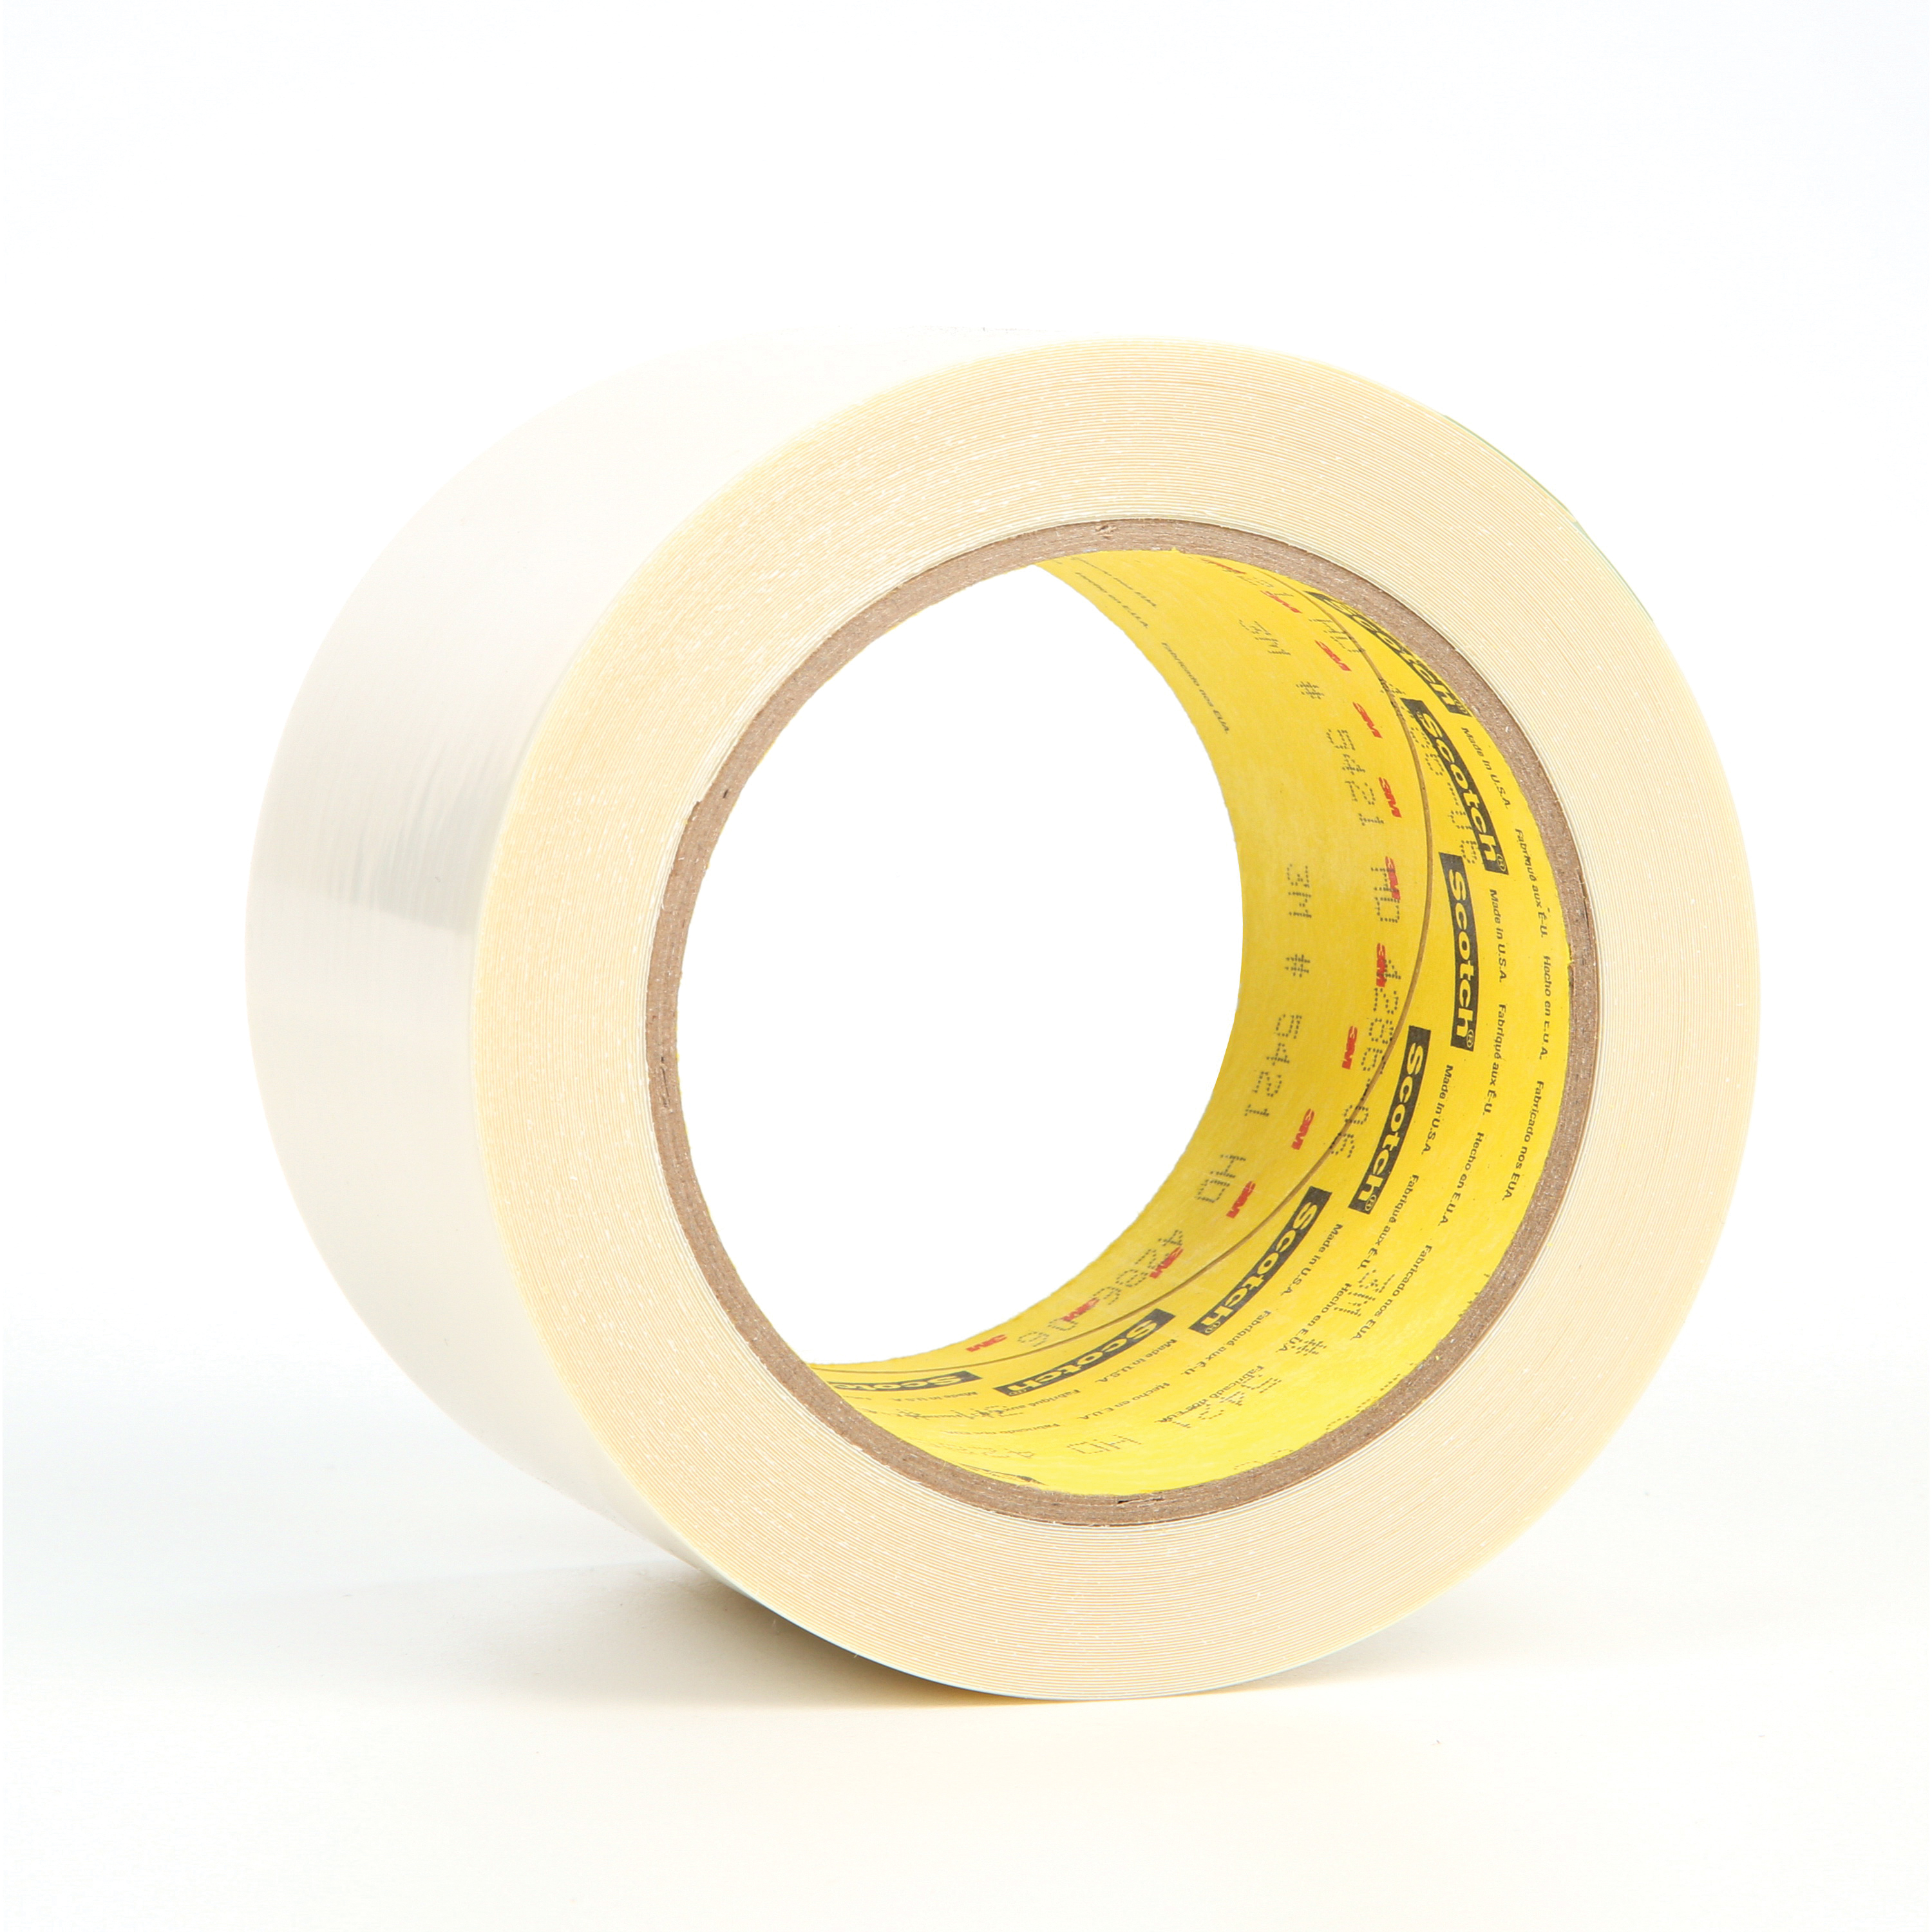 3M™ 021200-11989 General Purpose Film Tape, 18 yd L x 3 in W, 6.7 mil THK, Rubber Adhesive, UHMWP Backing, Transparent